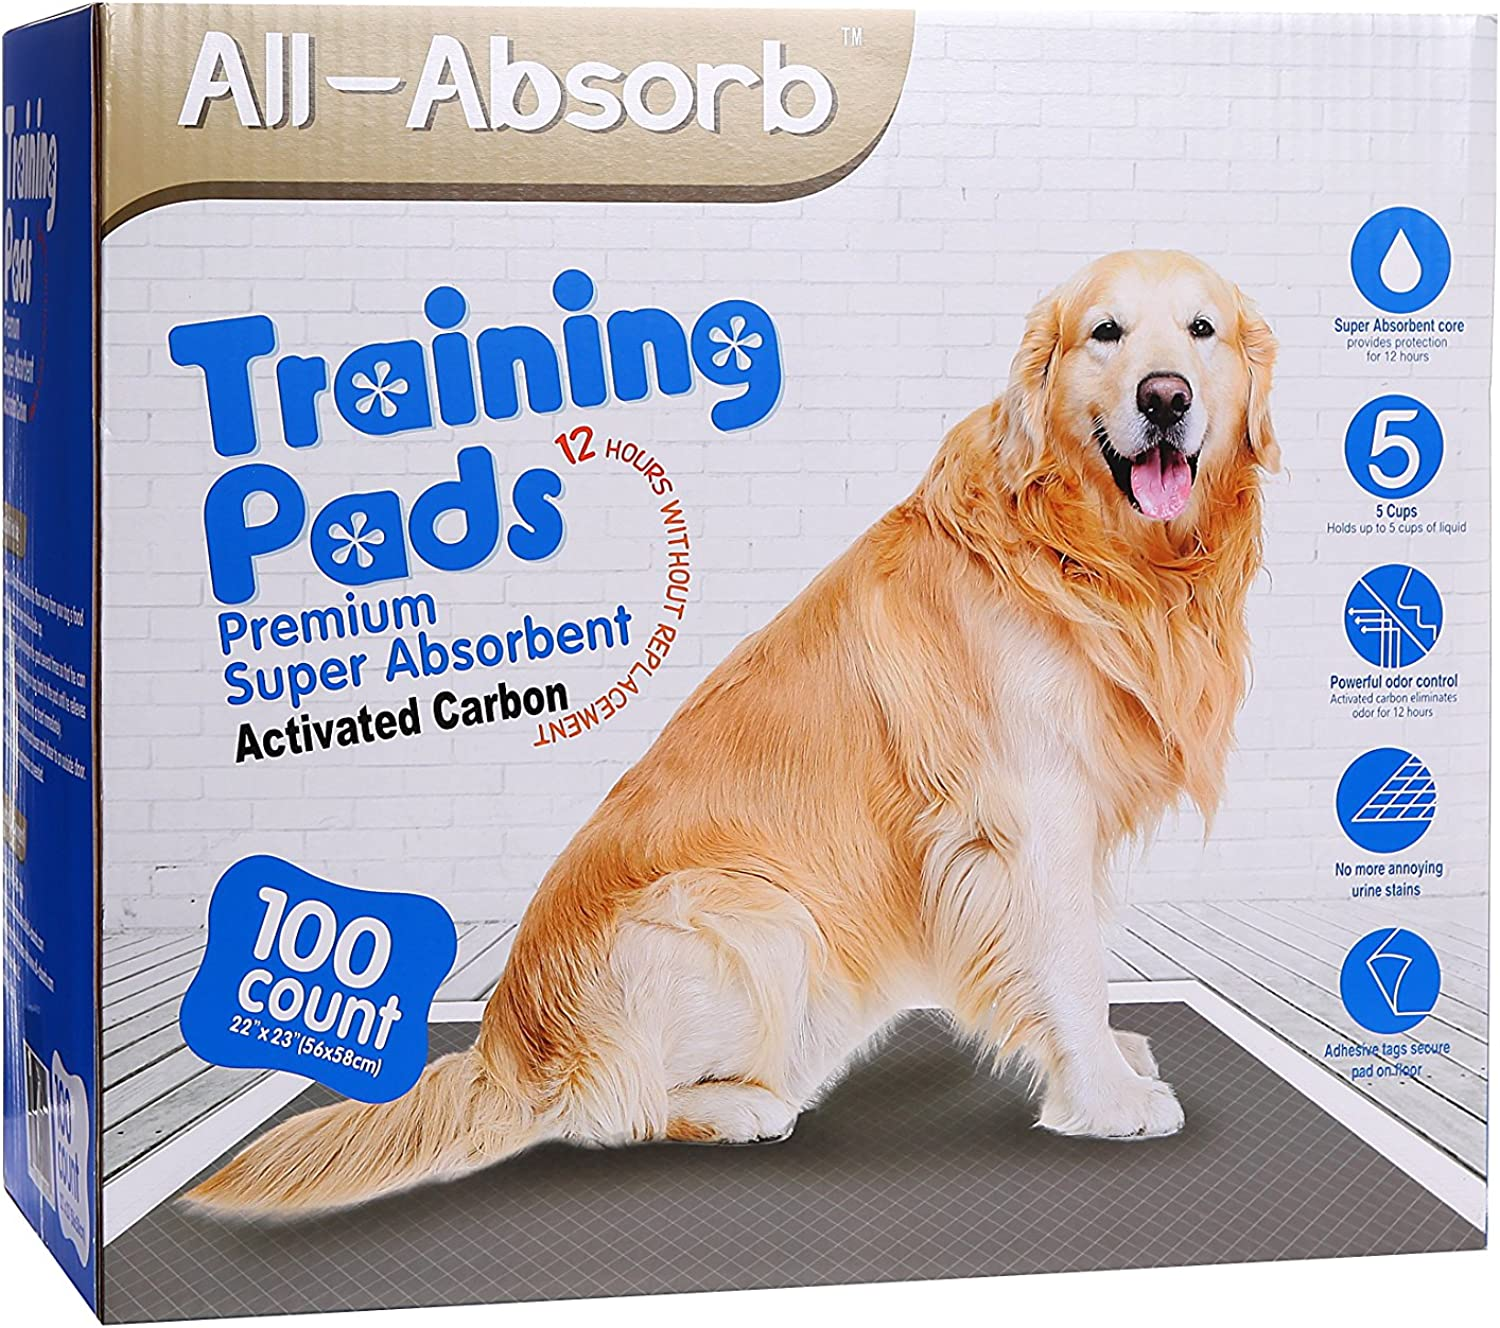 AllAbsorb Premium Training Pads, Activated Carbon, 22in by 23 , 100Count